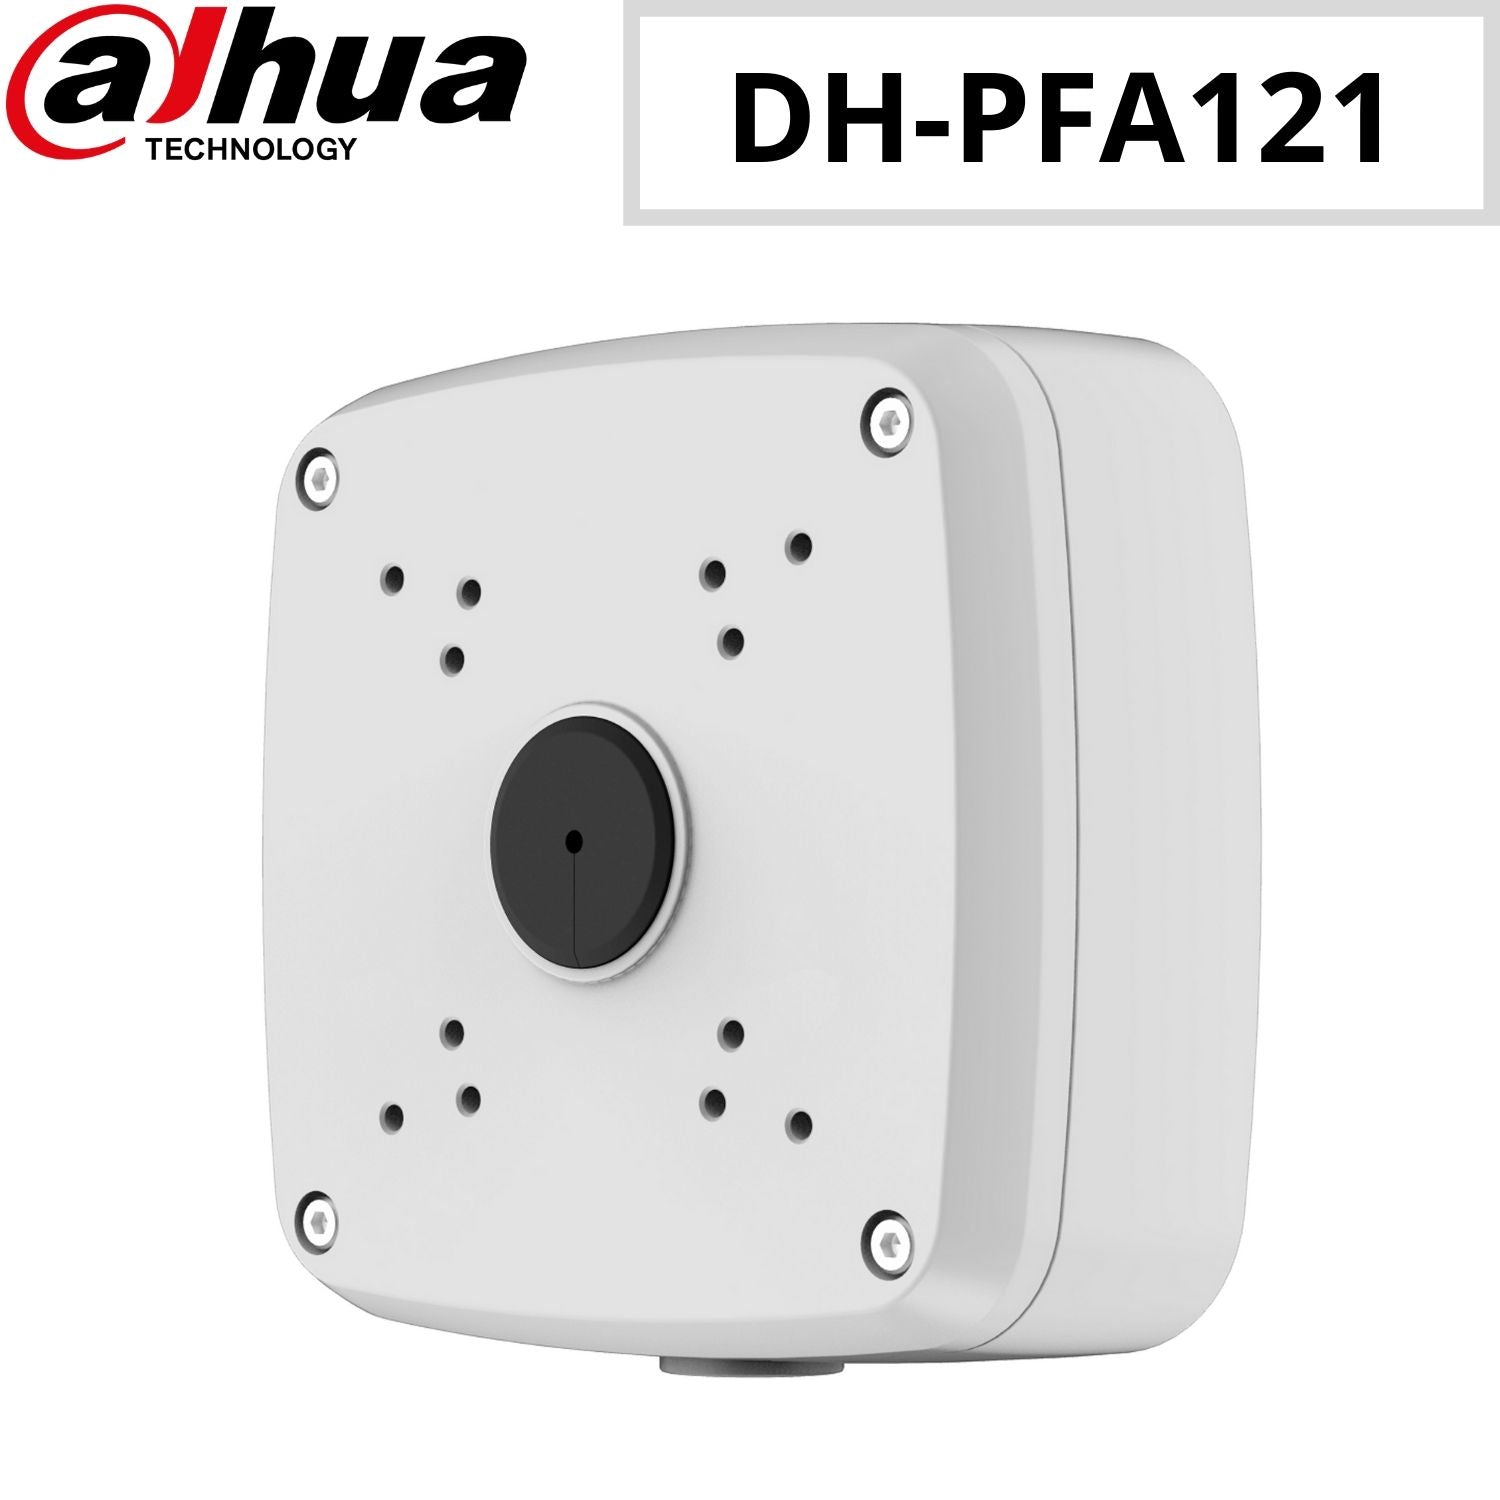 Dahua DH-PFA121 Water-proof Junction Box